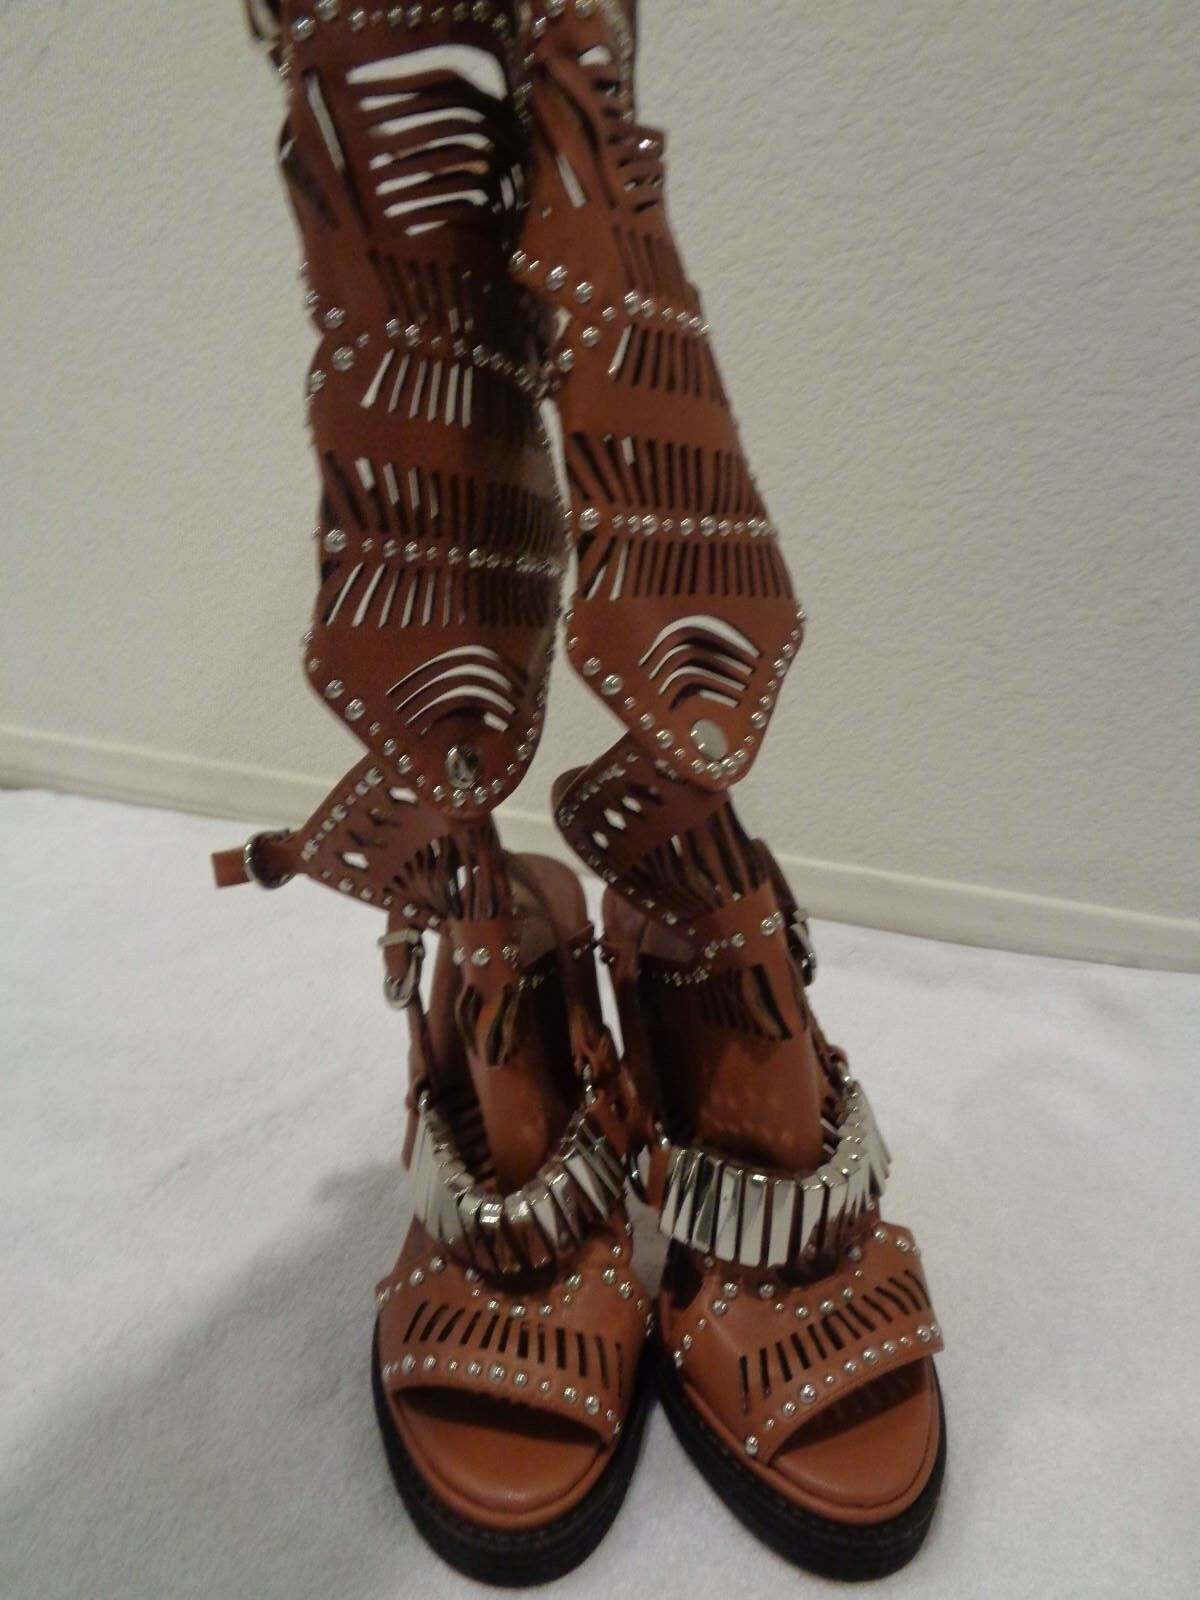 NEW JEFFREY CAMPBELL  290 TAN BELLONA BELLONA BELLONA LEATHER KNEE HIGH SANDALS SHOES SZ 7 e8f197